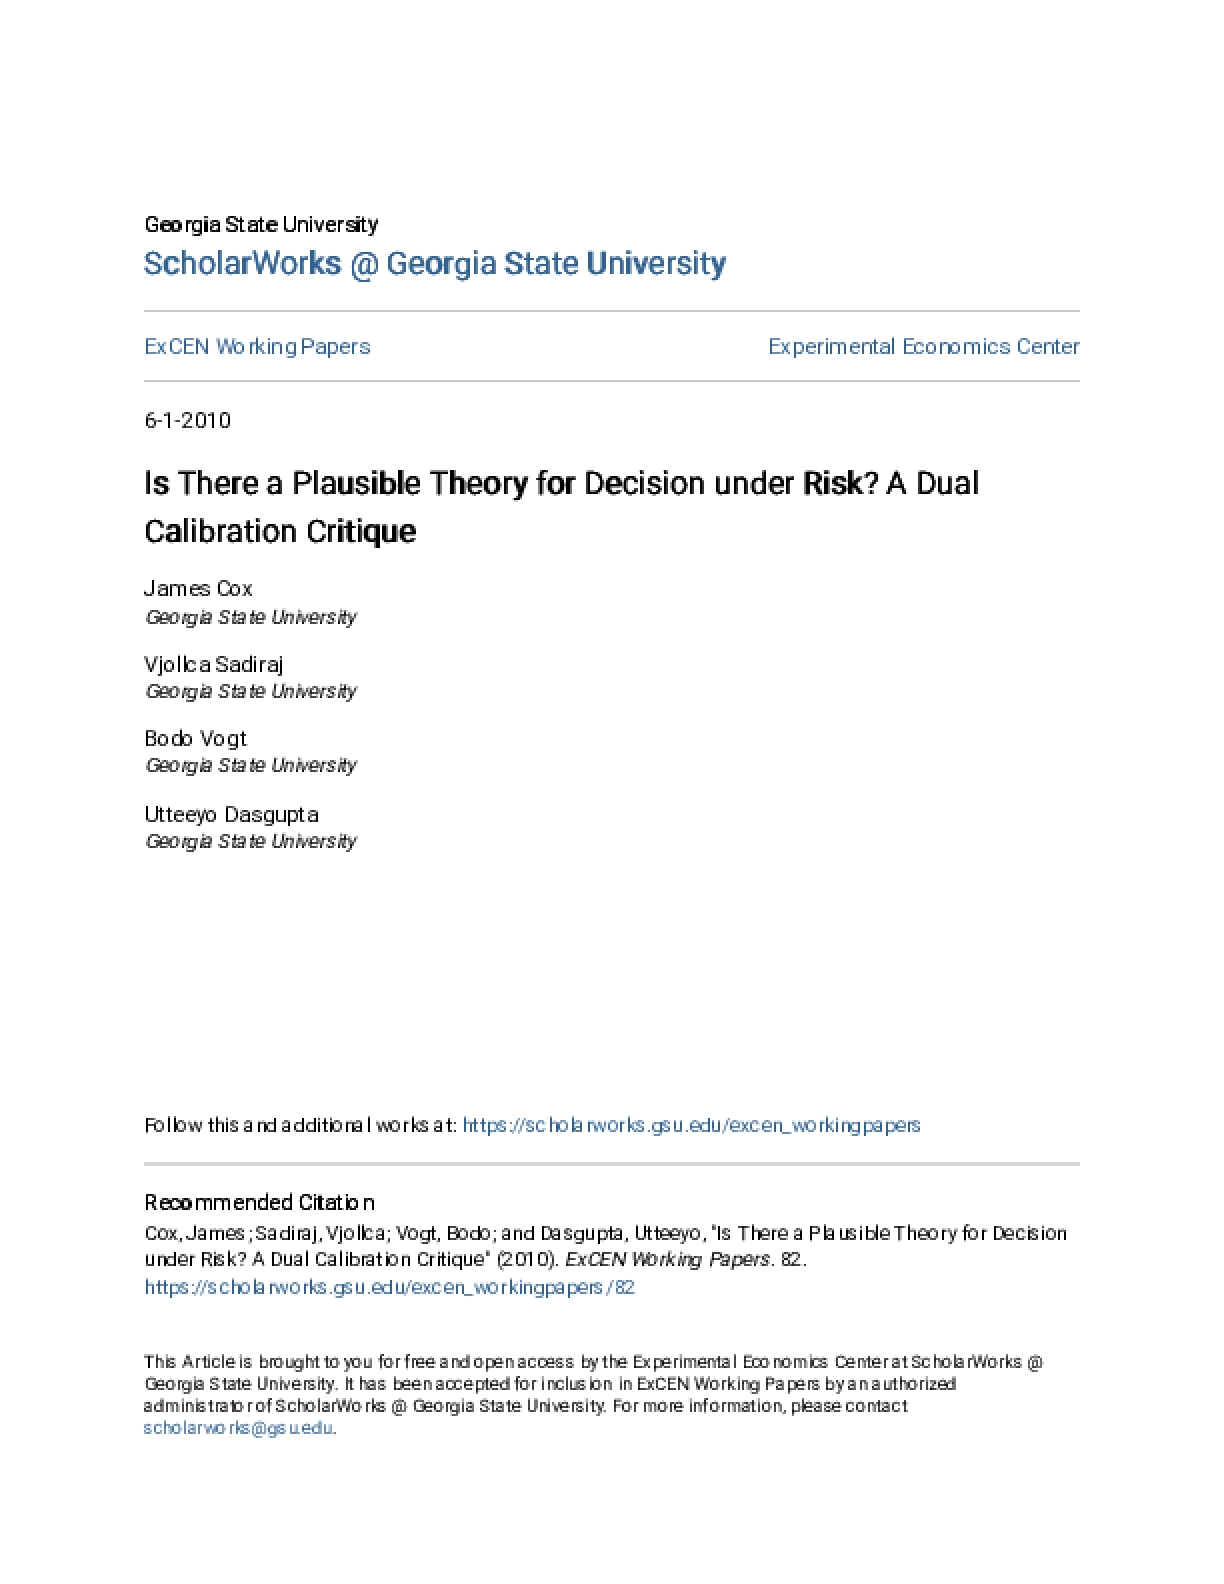 Is There a Plausible Theory for Decision Under Risk? A Dual Calibration Critique